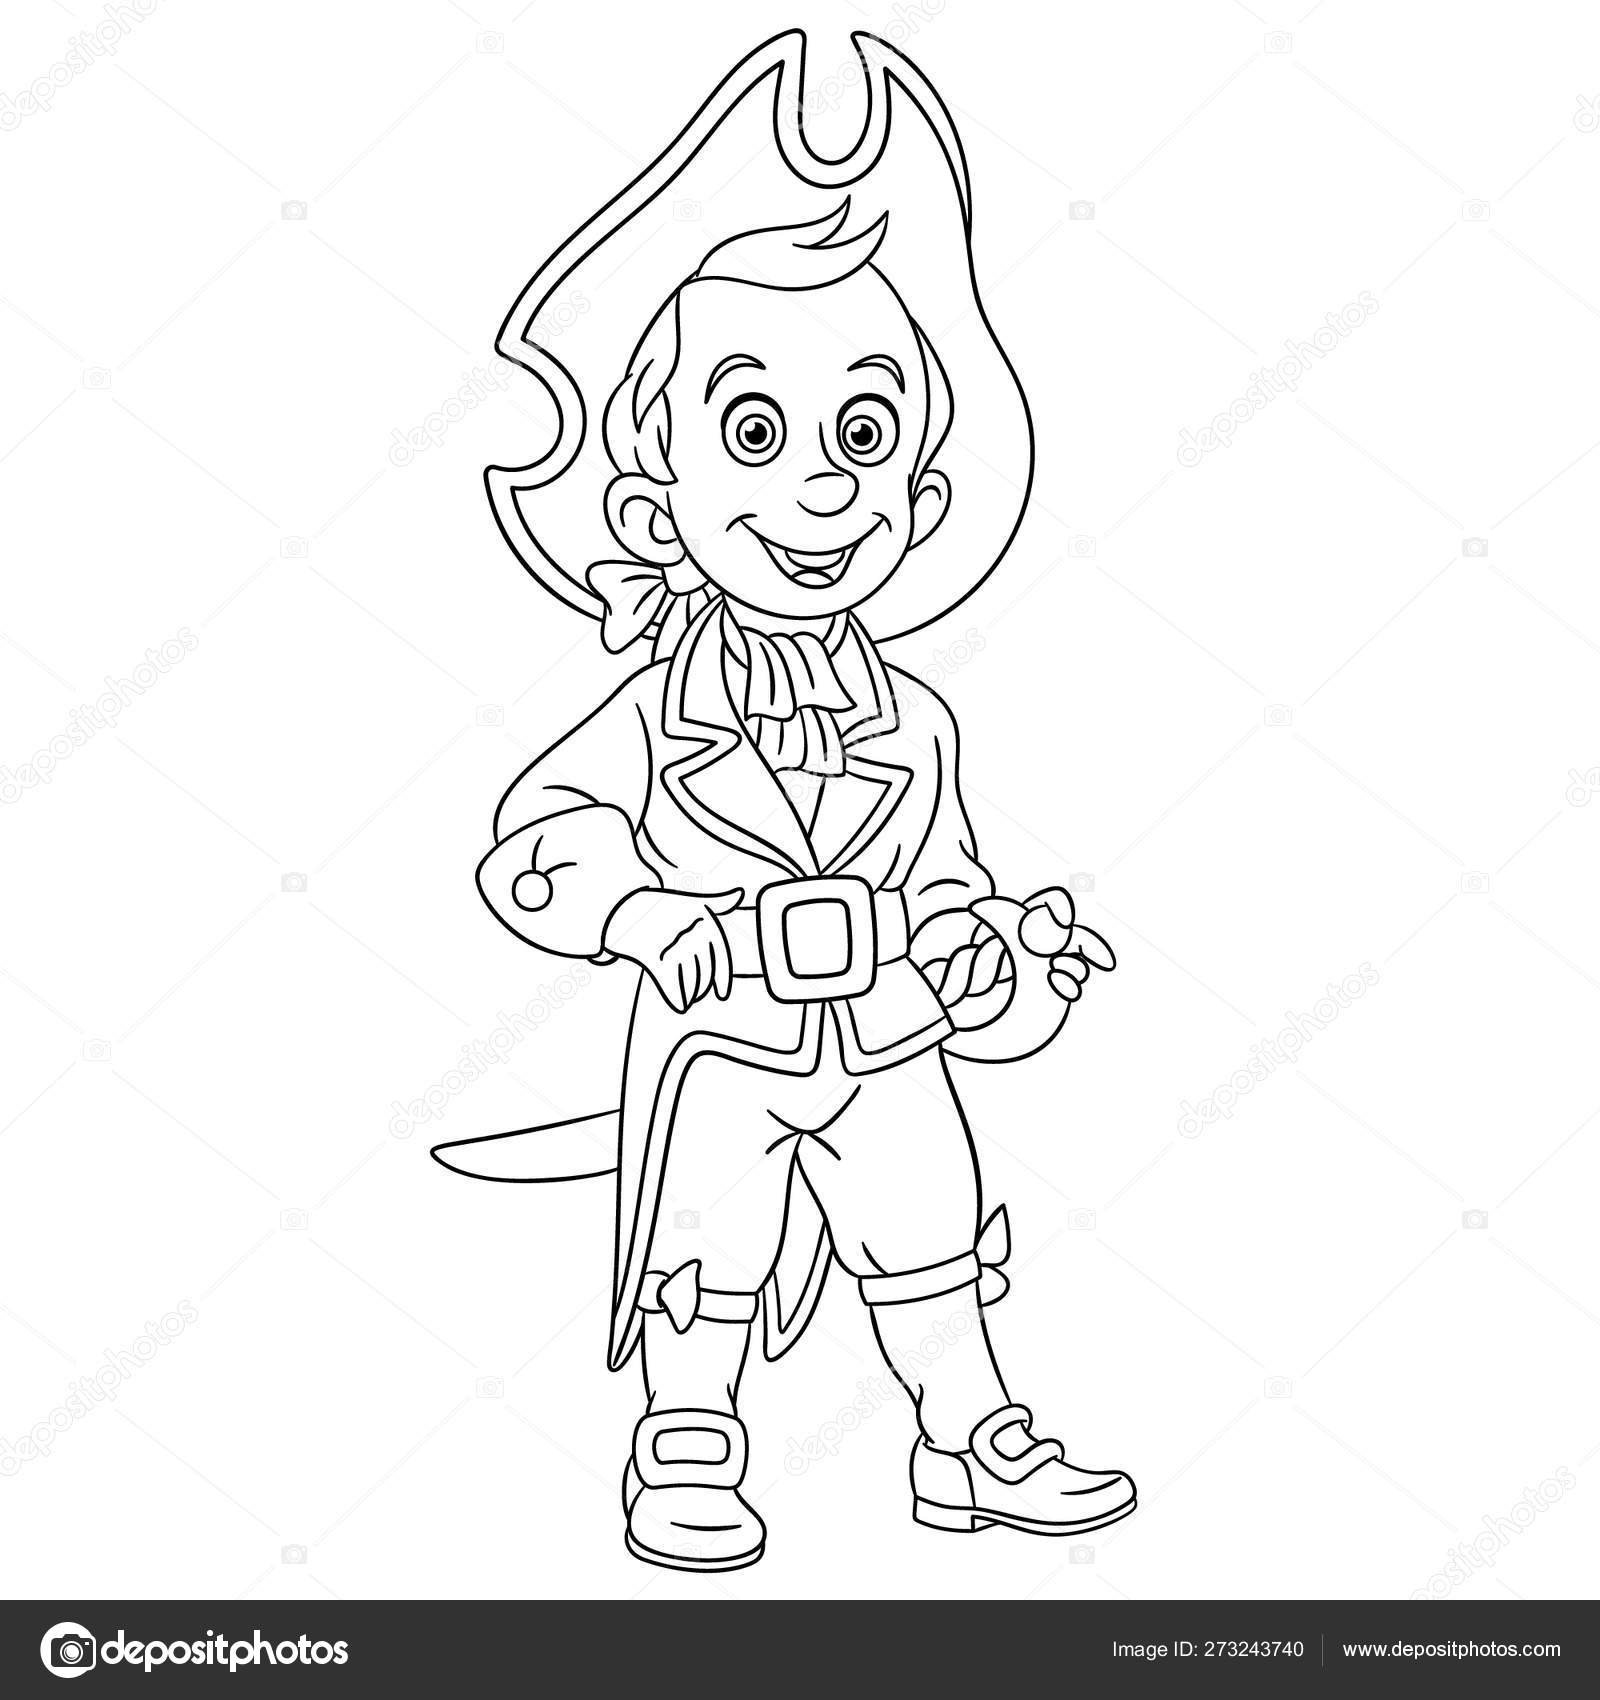 Coloring page with ship sailor captain pirate stock vector